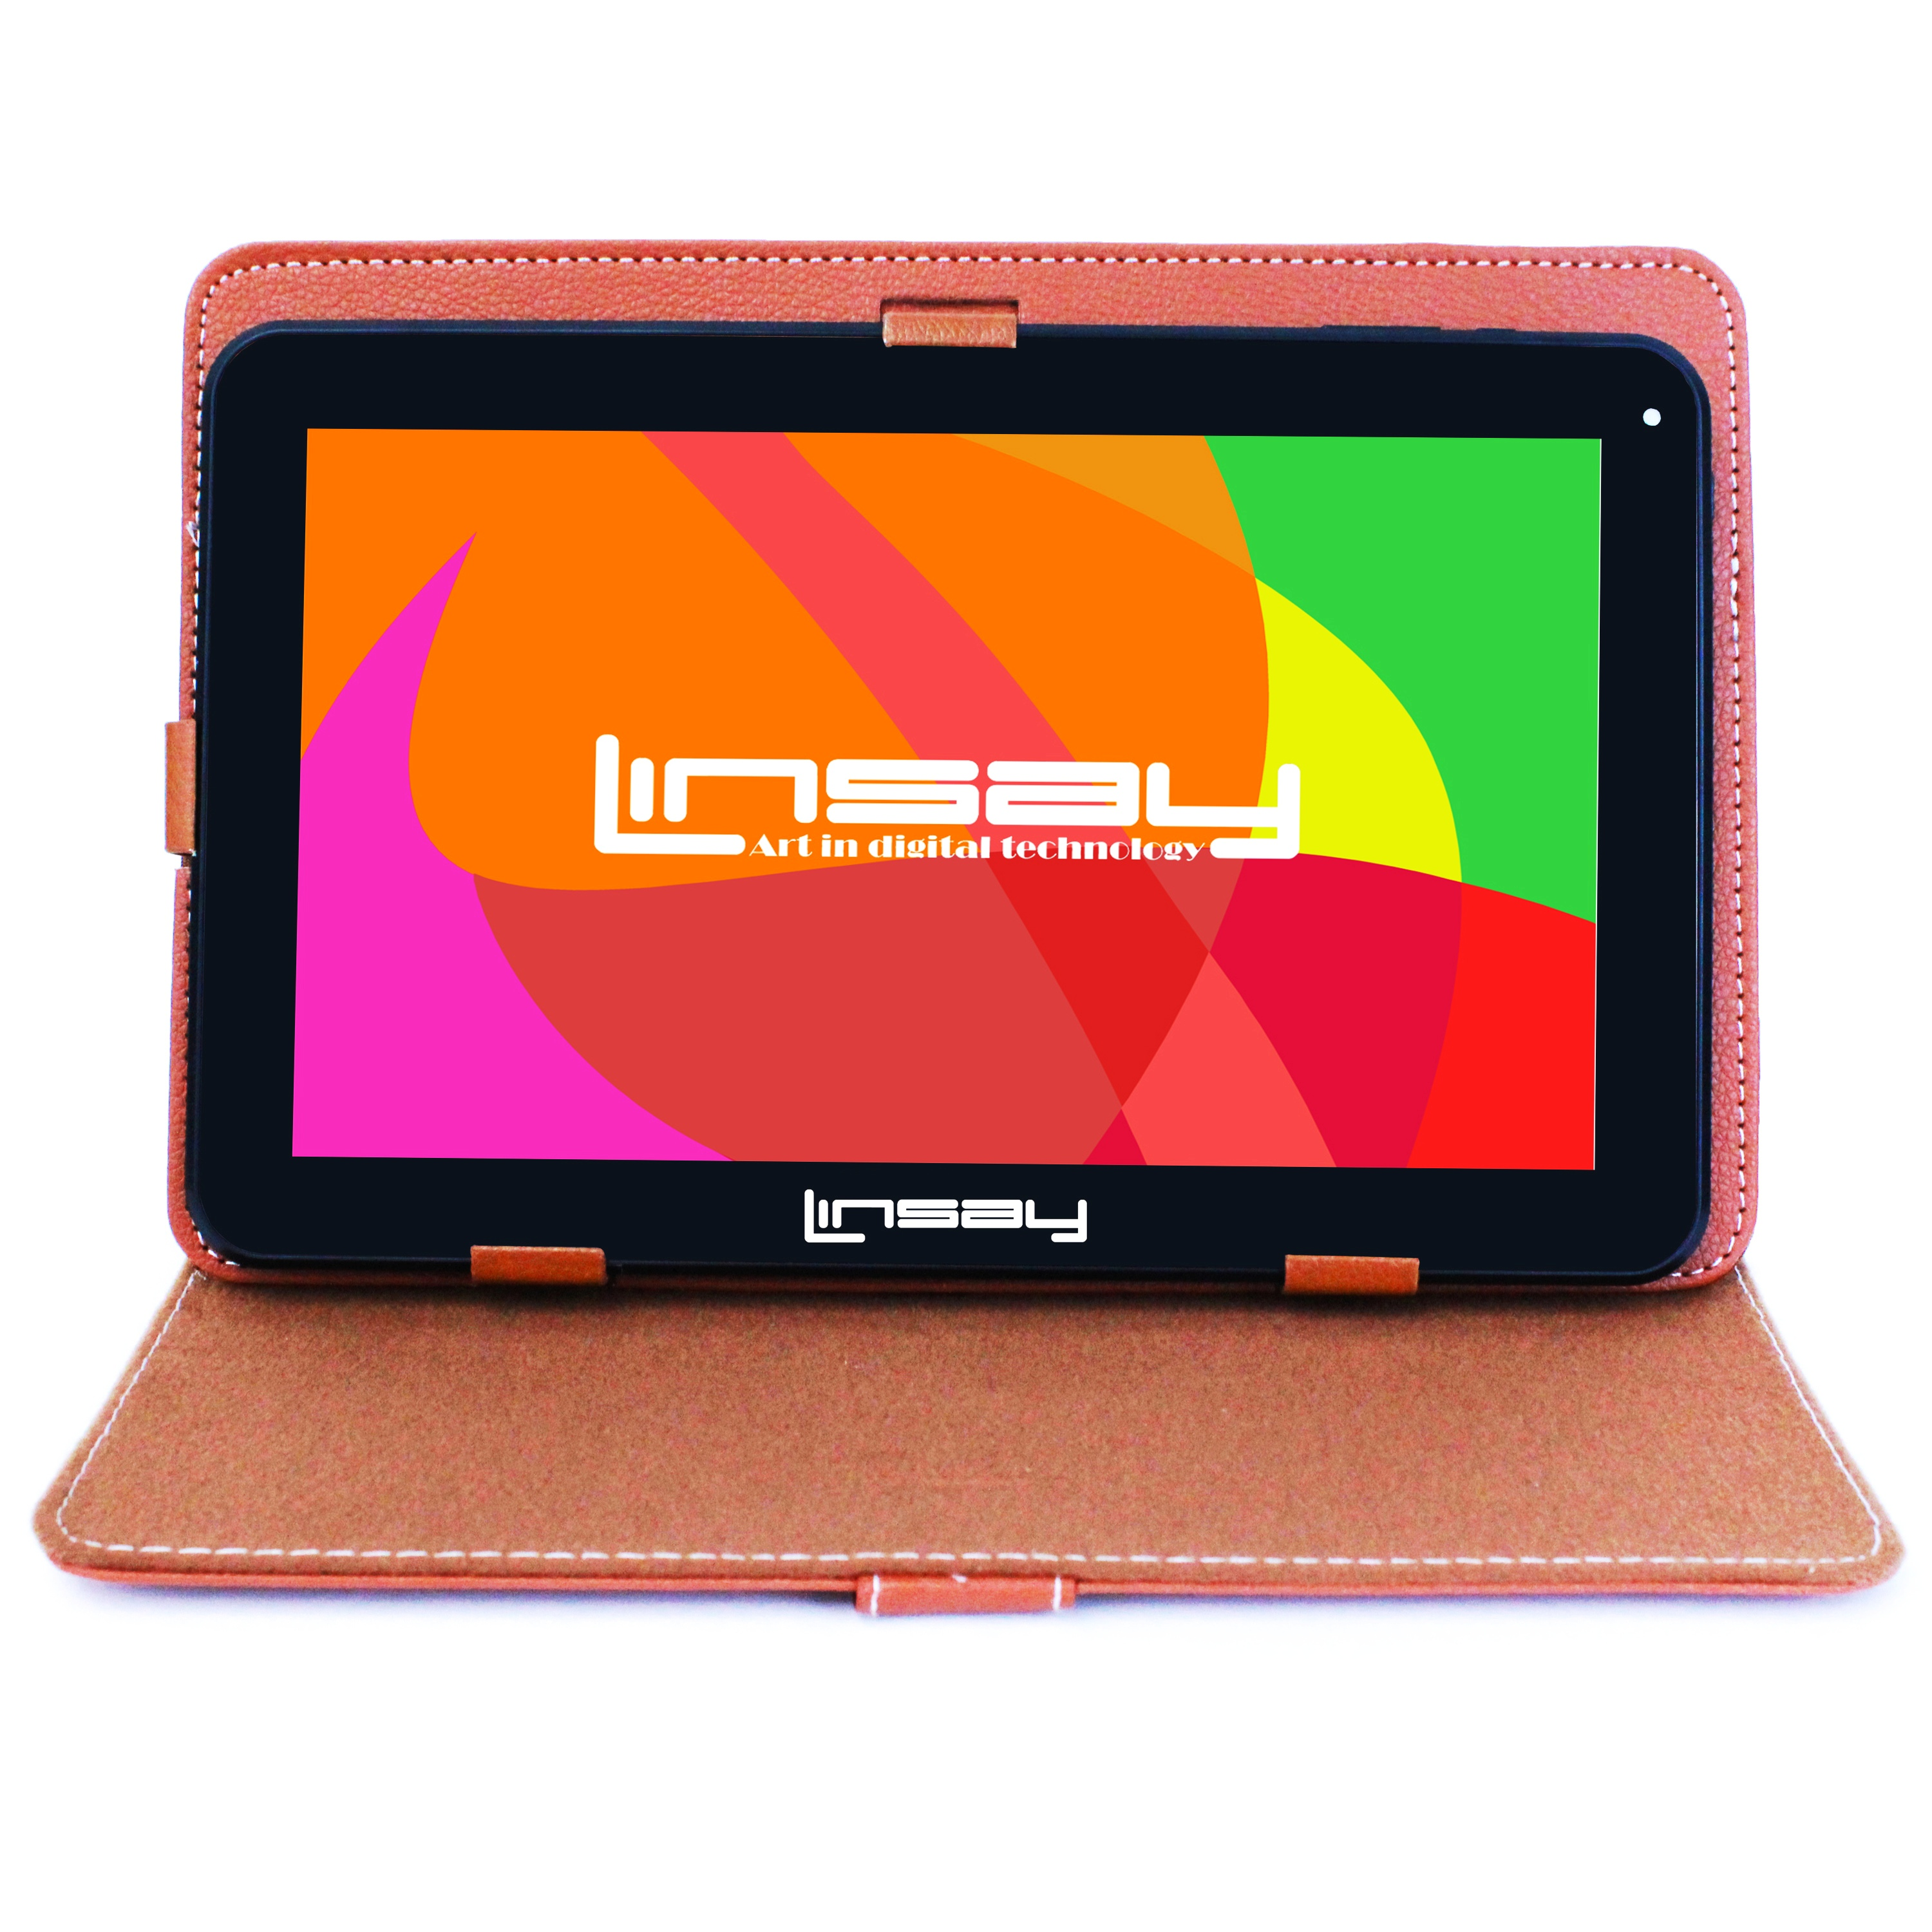 "LINSAY 10.1"" Touchscreen Quad Core Tablet PC Featuring Android 4.4 (KitKat) Operating System Bundle with Brown Case"